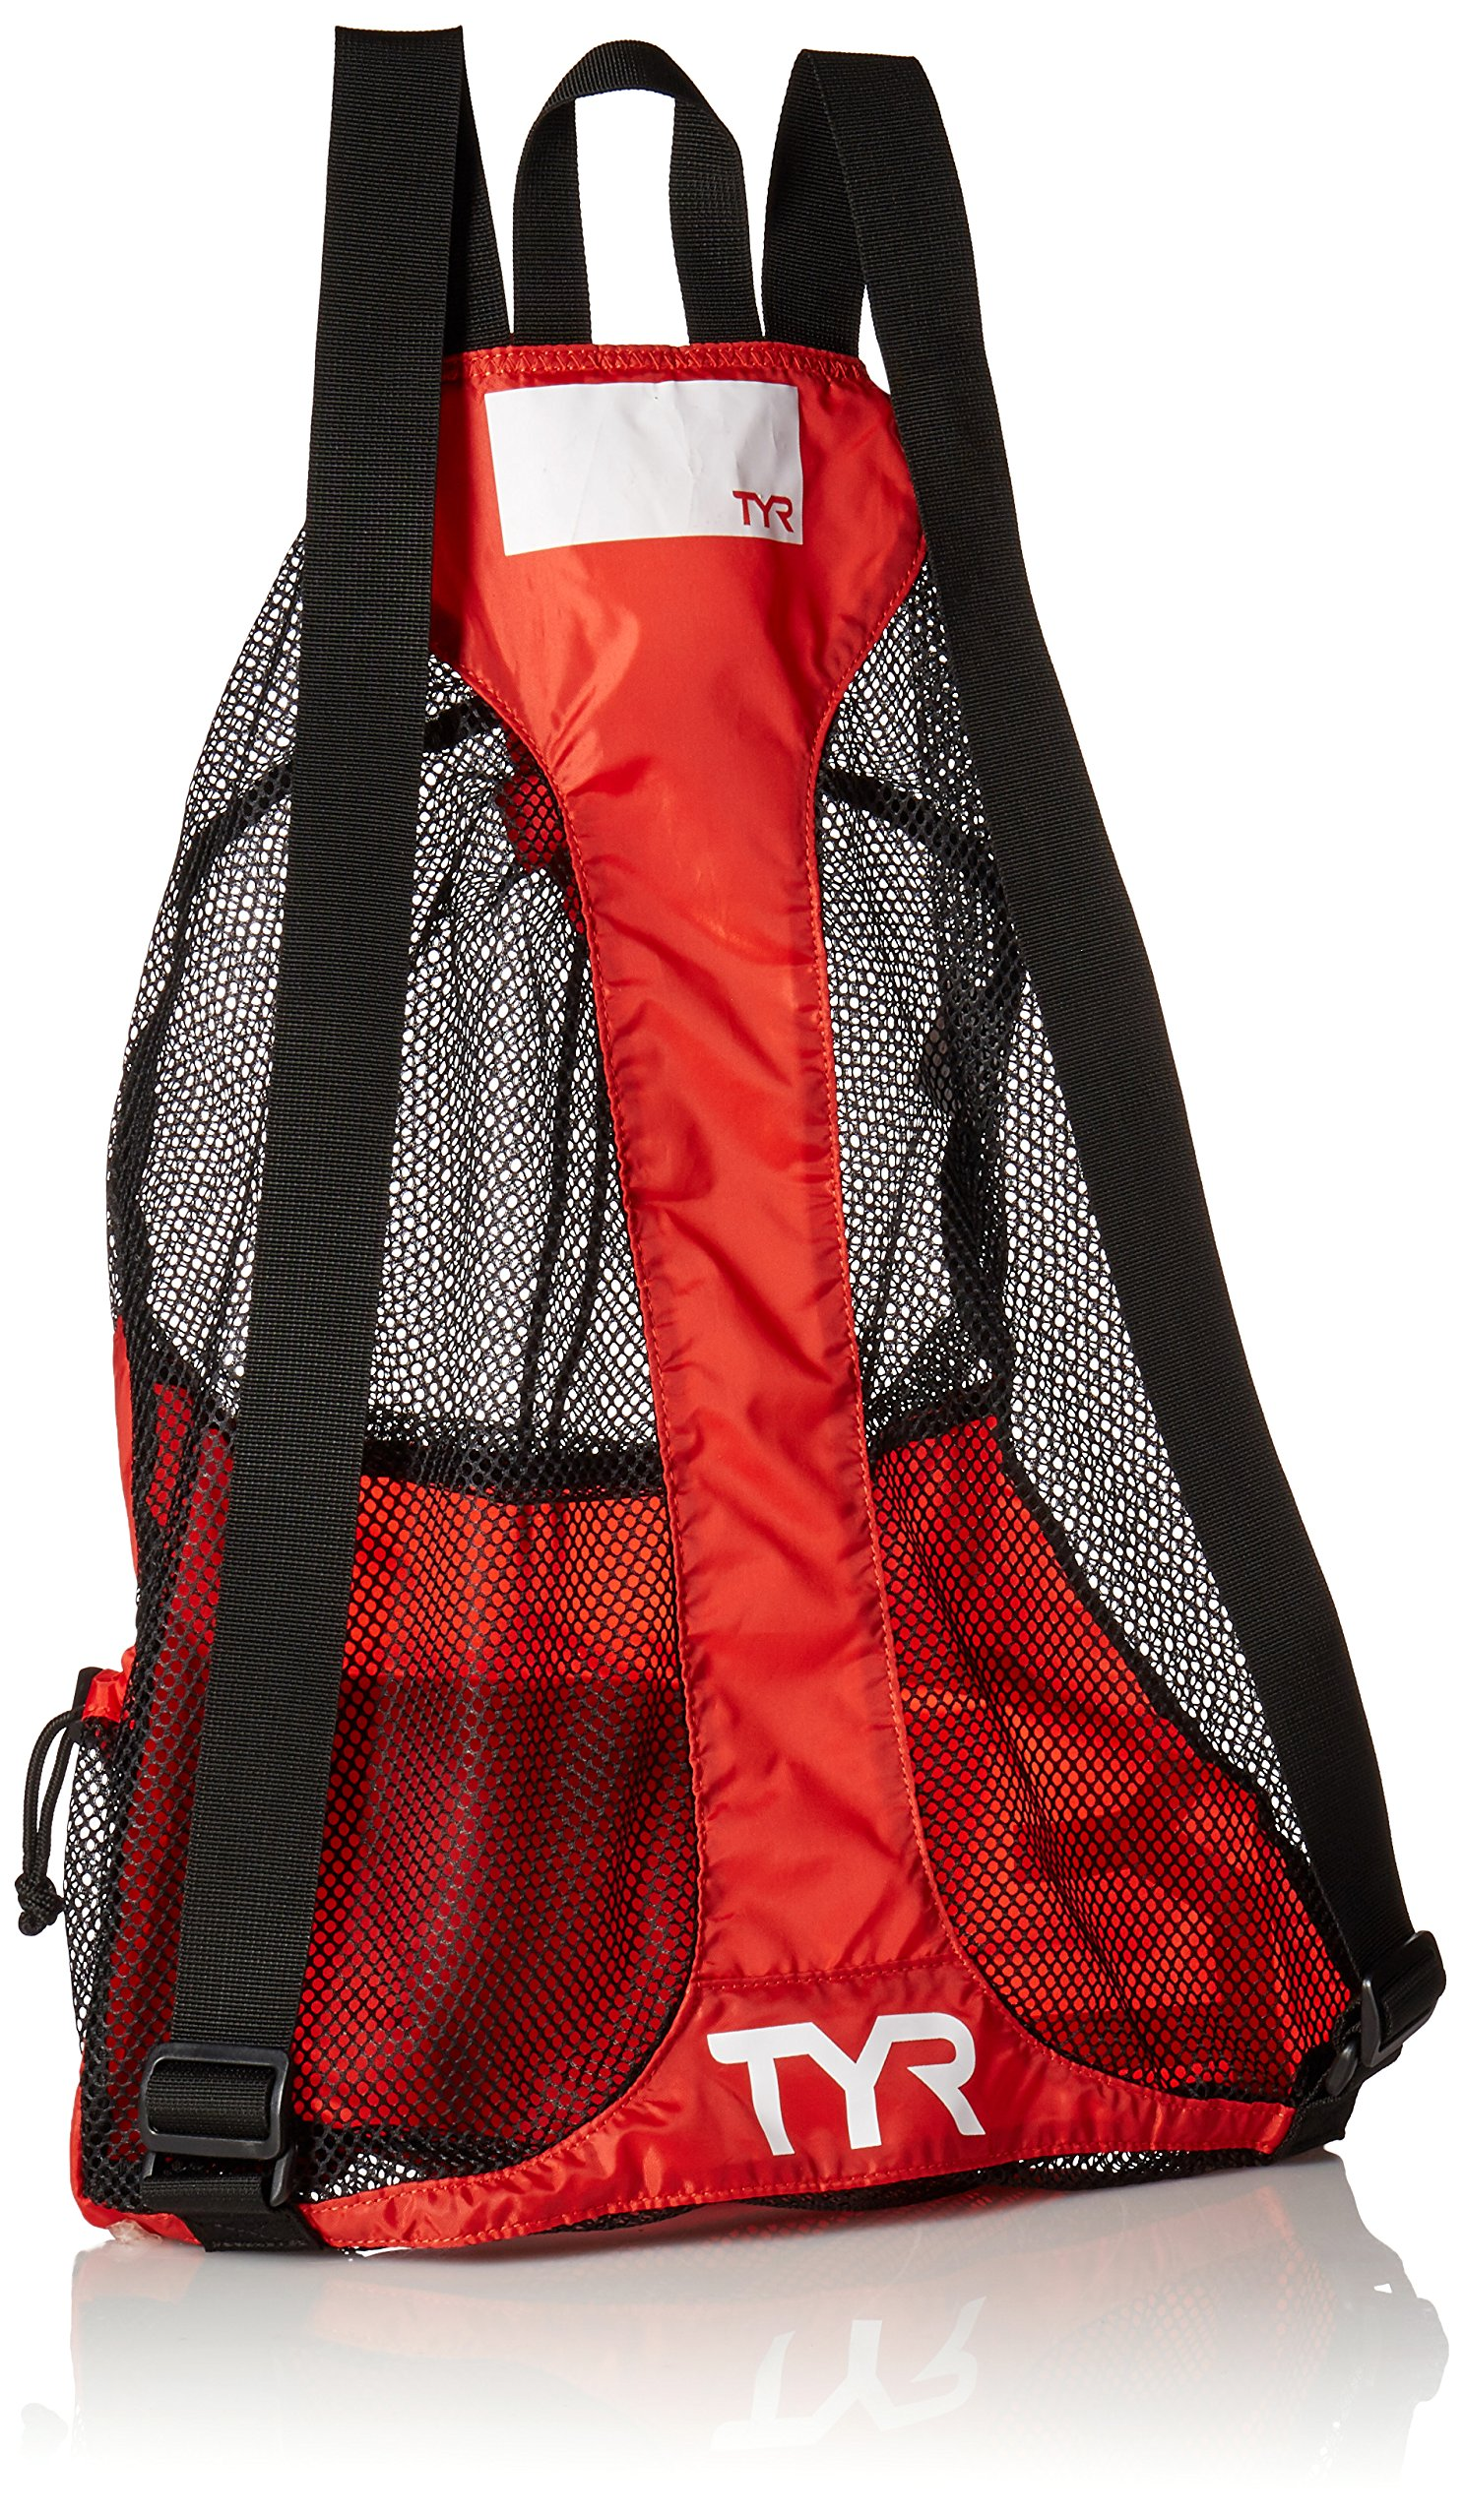 TYR Big Mesh Mummy Backpack, Red, Medium by TYR (Image #2)